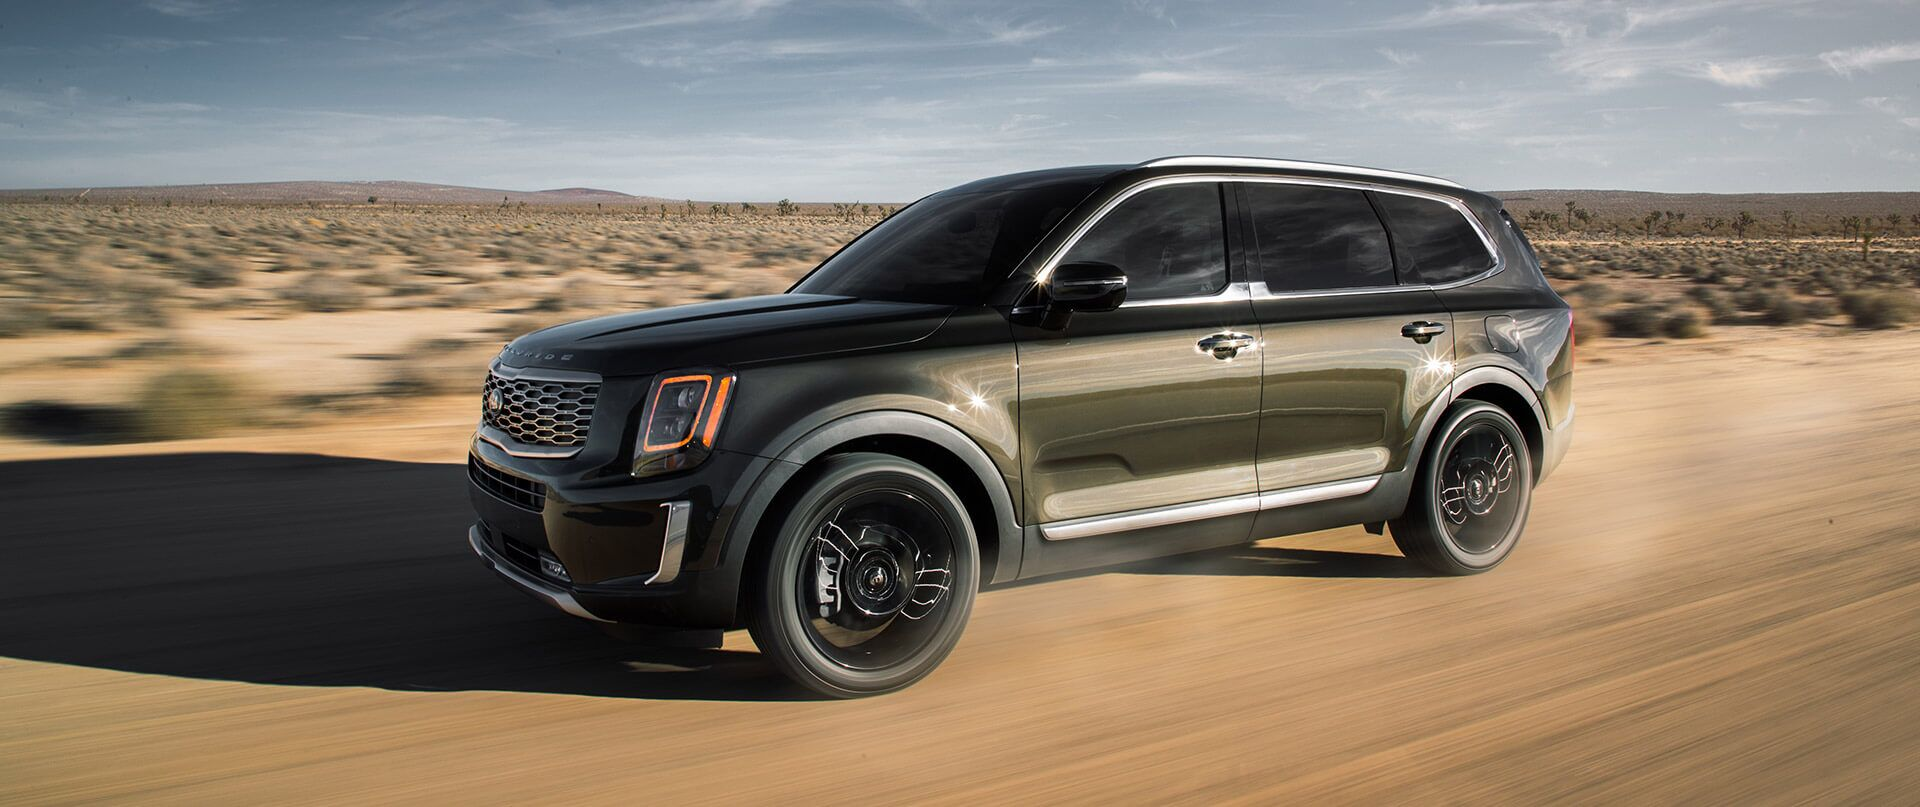 2020 Kia Telluride in West Salem, WI